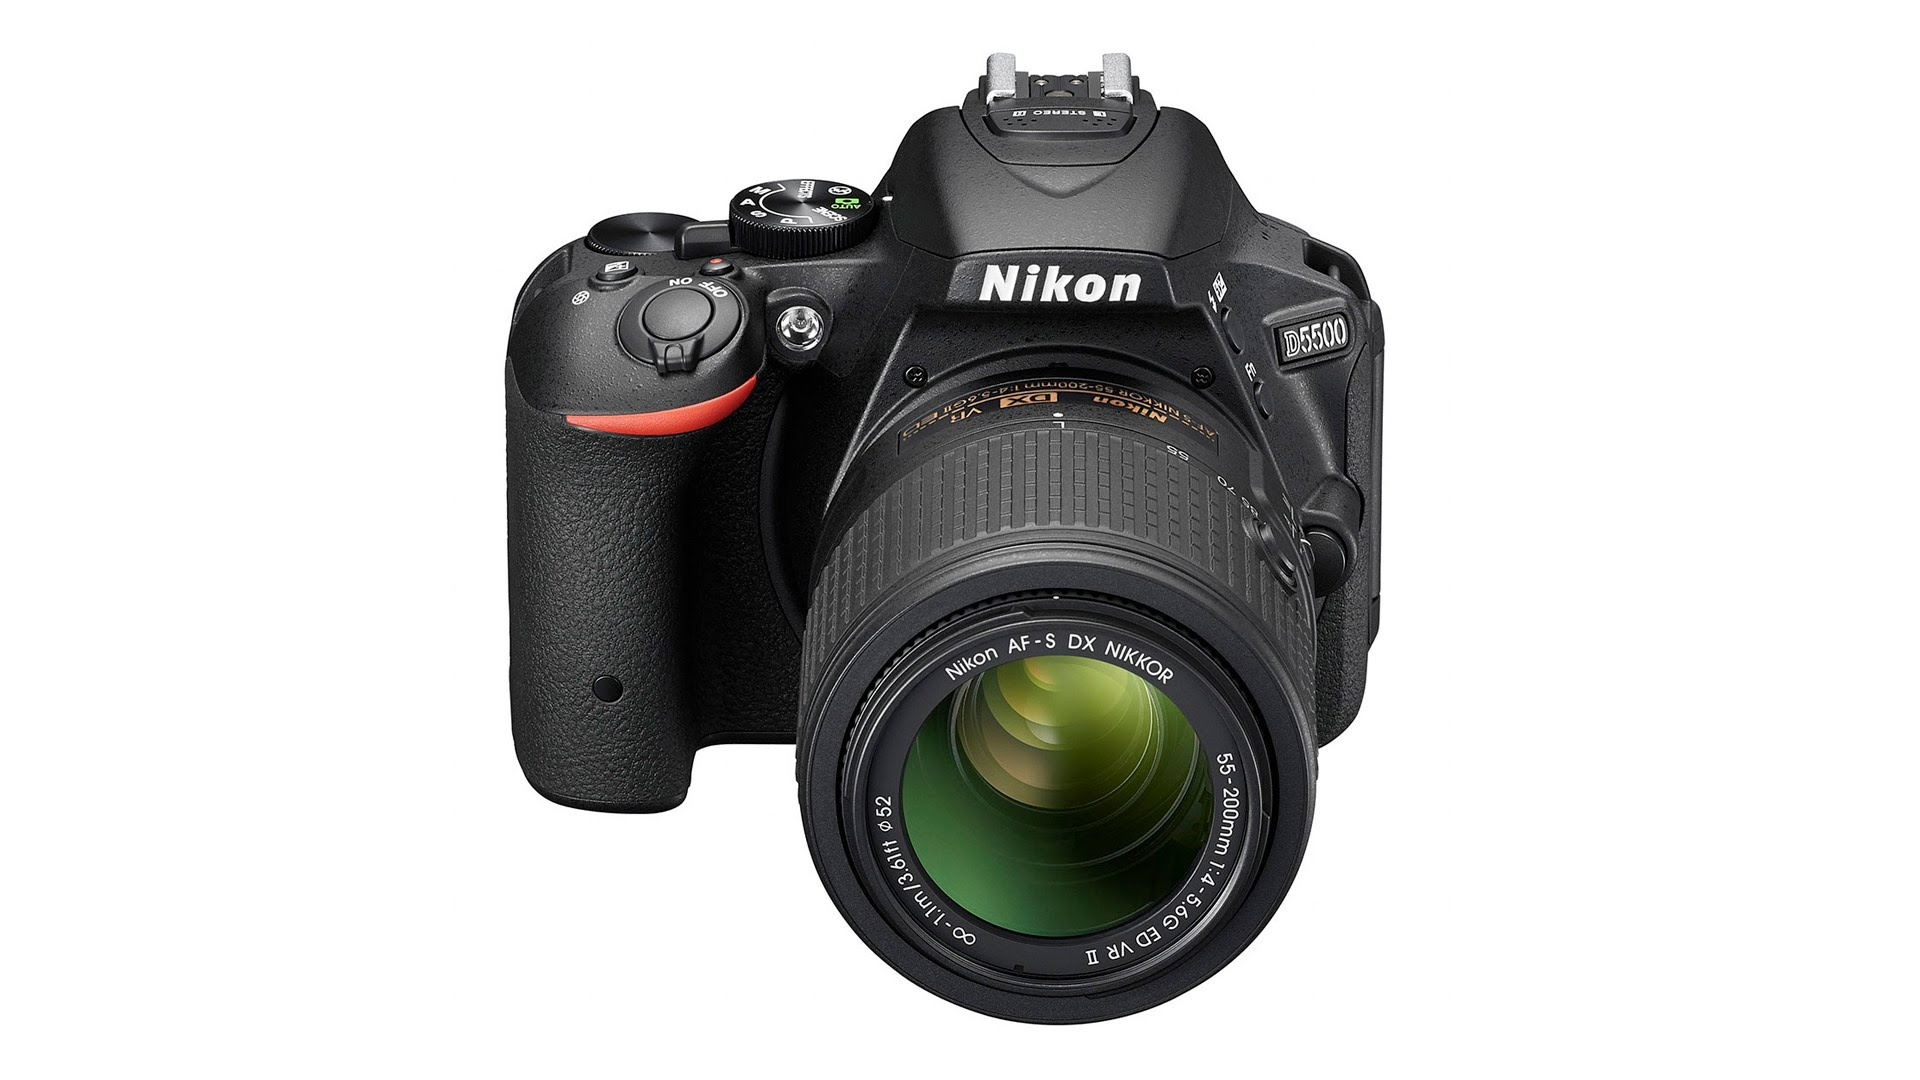 Camera New Canon Dslr Cameras Coming Soon nikon d5600 dslr camera to be announced soon daily news coming soon